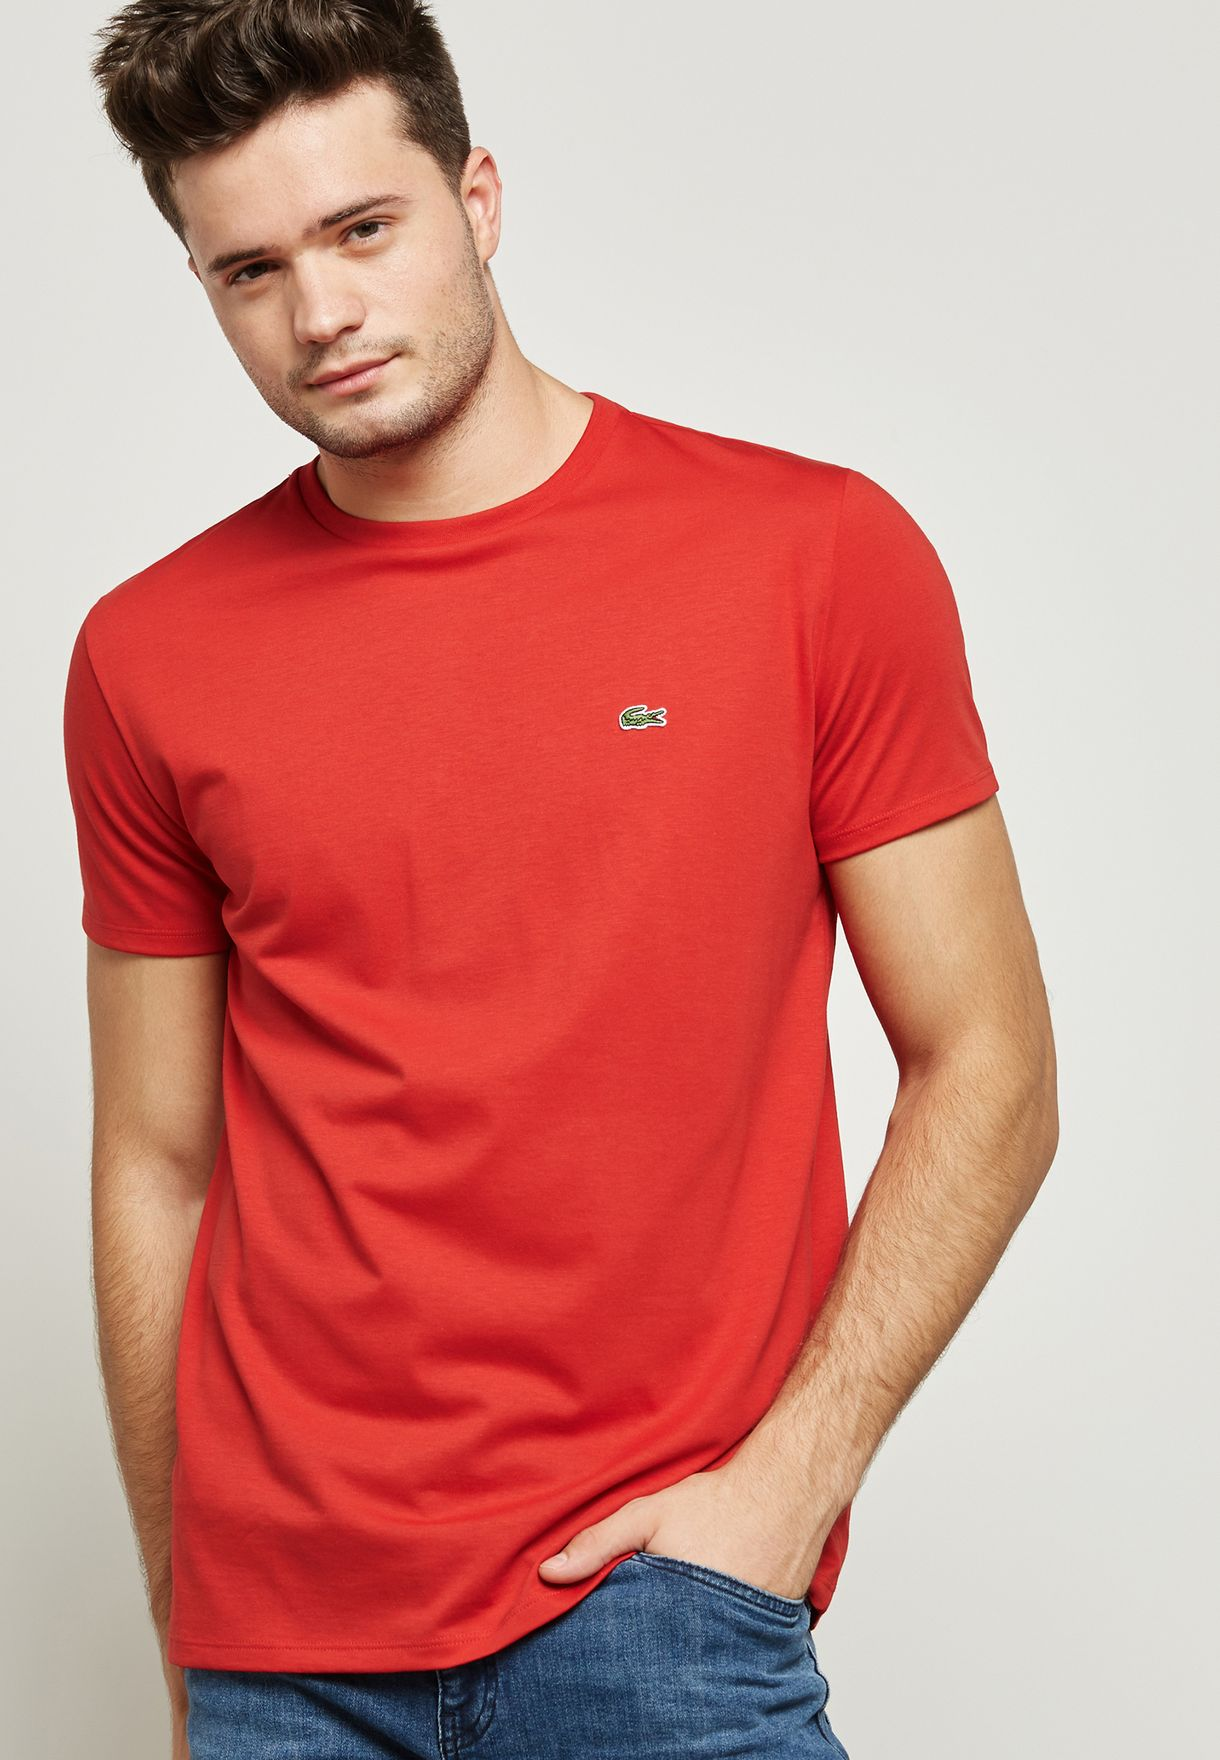 ec947899 Shop Lacoste red Essential T-Shirt TH6709-240 for Men in UAE ...